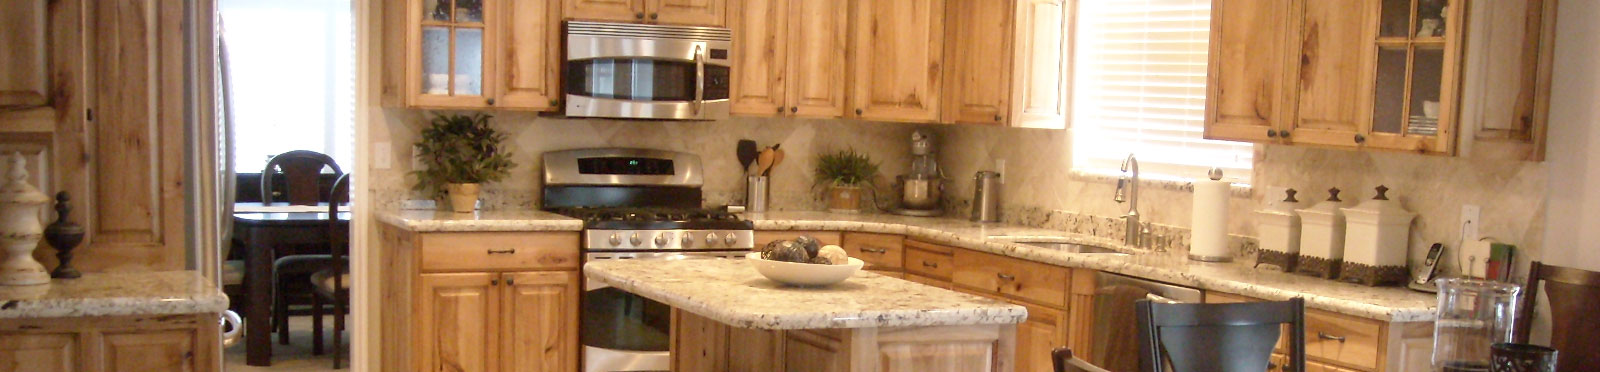 Cincinnati Ohio Kitchen And Bathroom Remodeling Day Kitchen Bath - Bathroom remodeling contractors cincinnati ohio